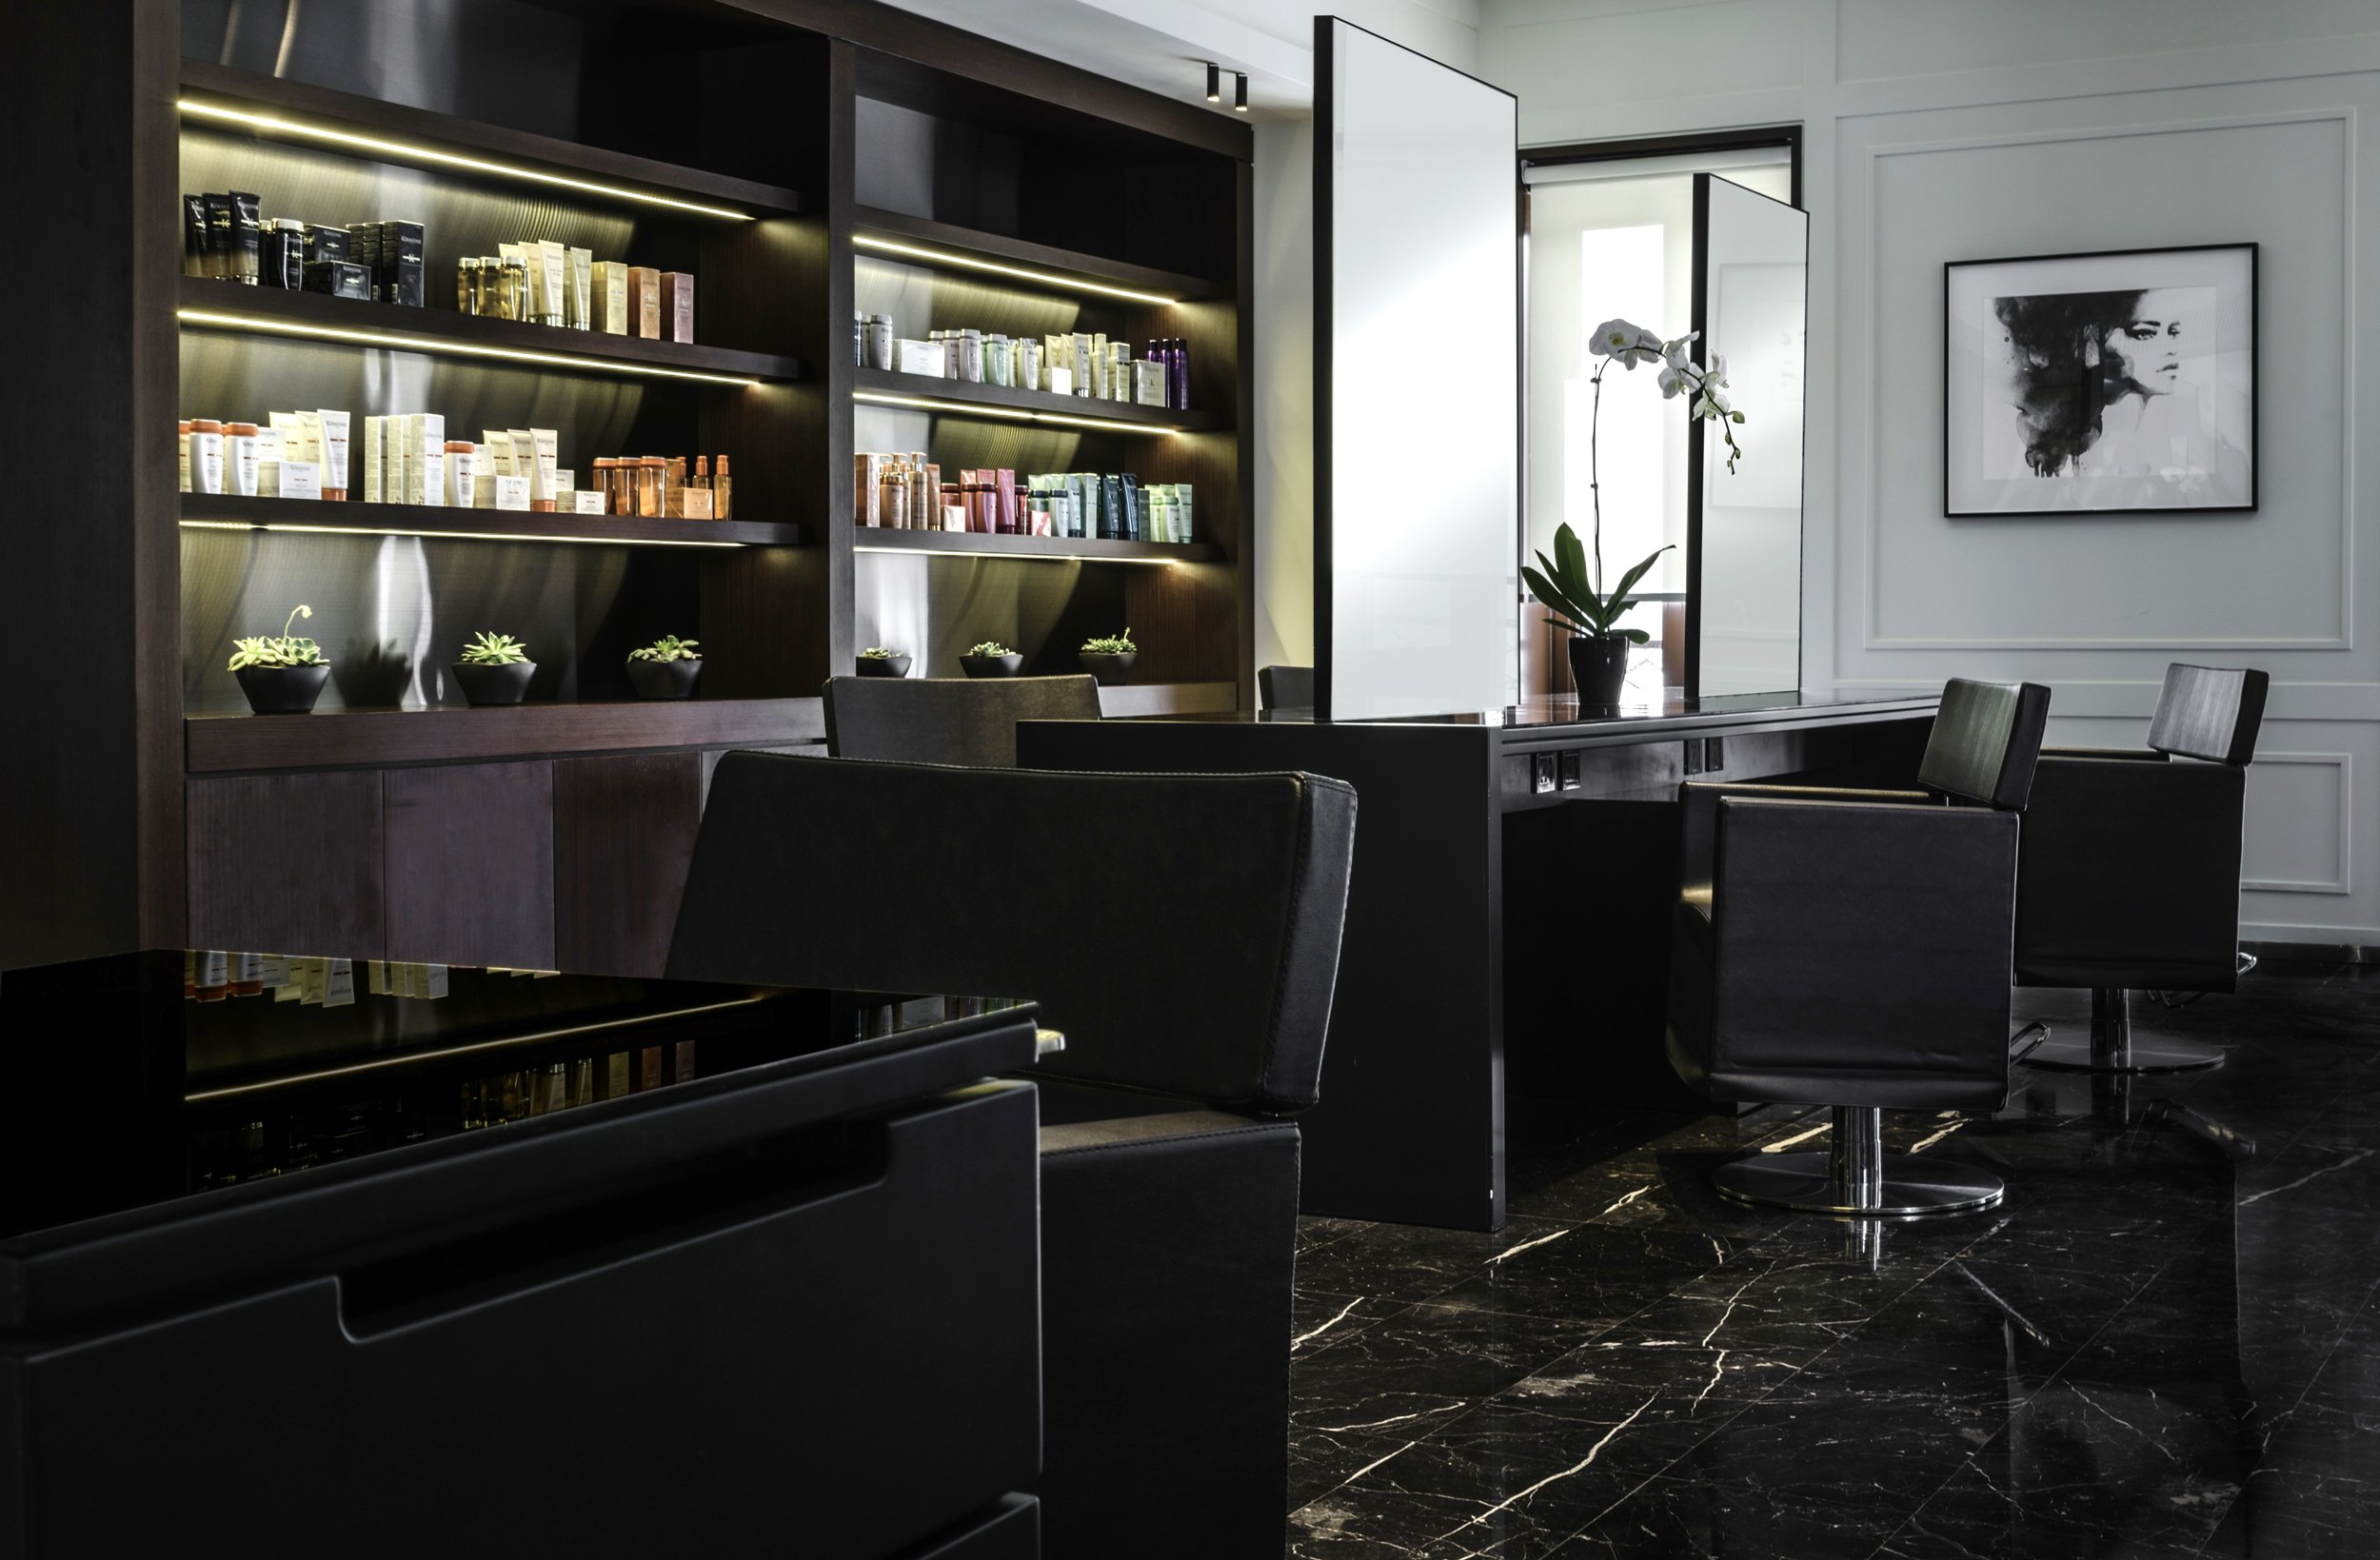 Internationally Renowned Celebrity Hairdresser, Rossano Ferretti, Opens Inaugural Middle Eastern Hair Spa.